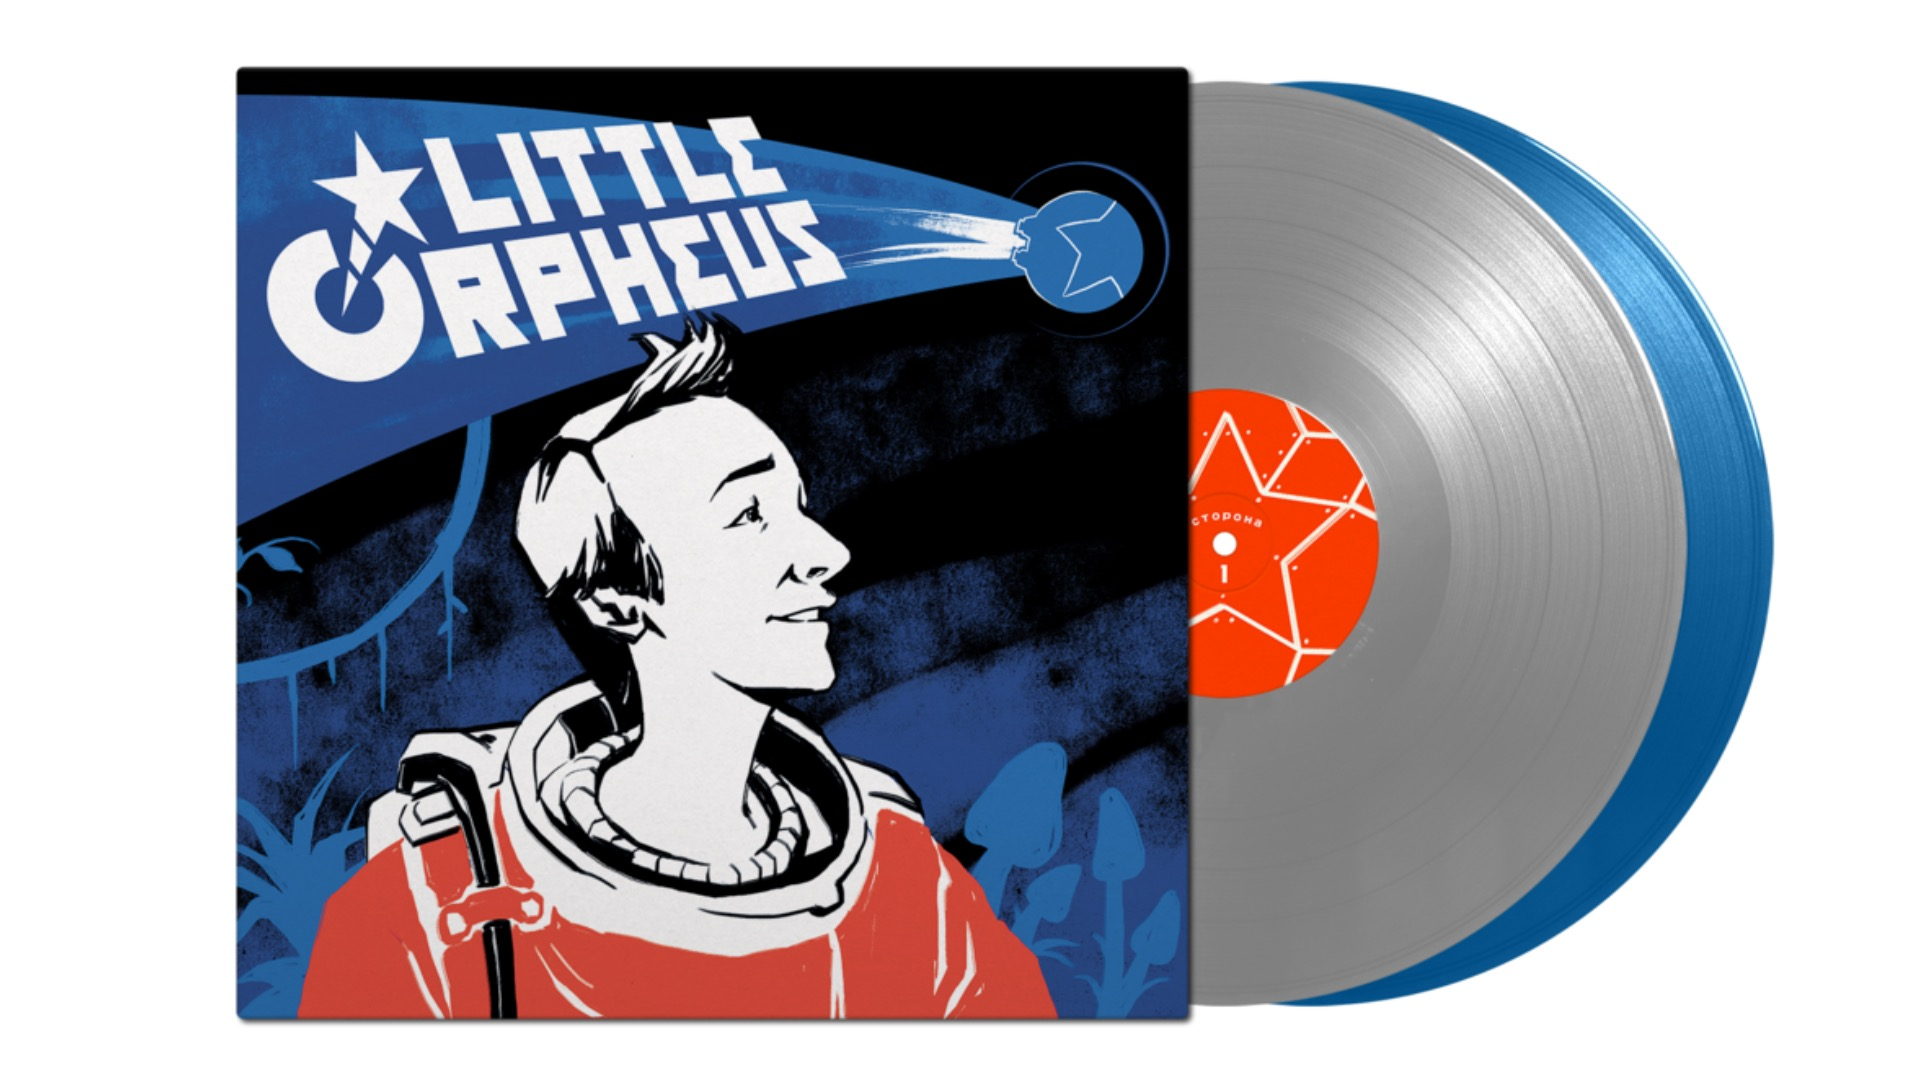 The Soundtrack to 'Little Orpheus' on Apple Arcade from The Chinese Room Is Getting a Vinyl Release This November with Pre-Orders Now Live